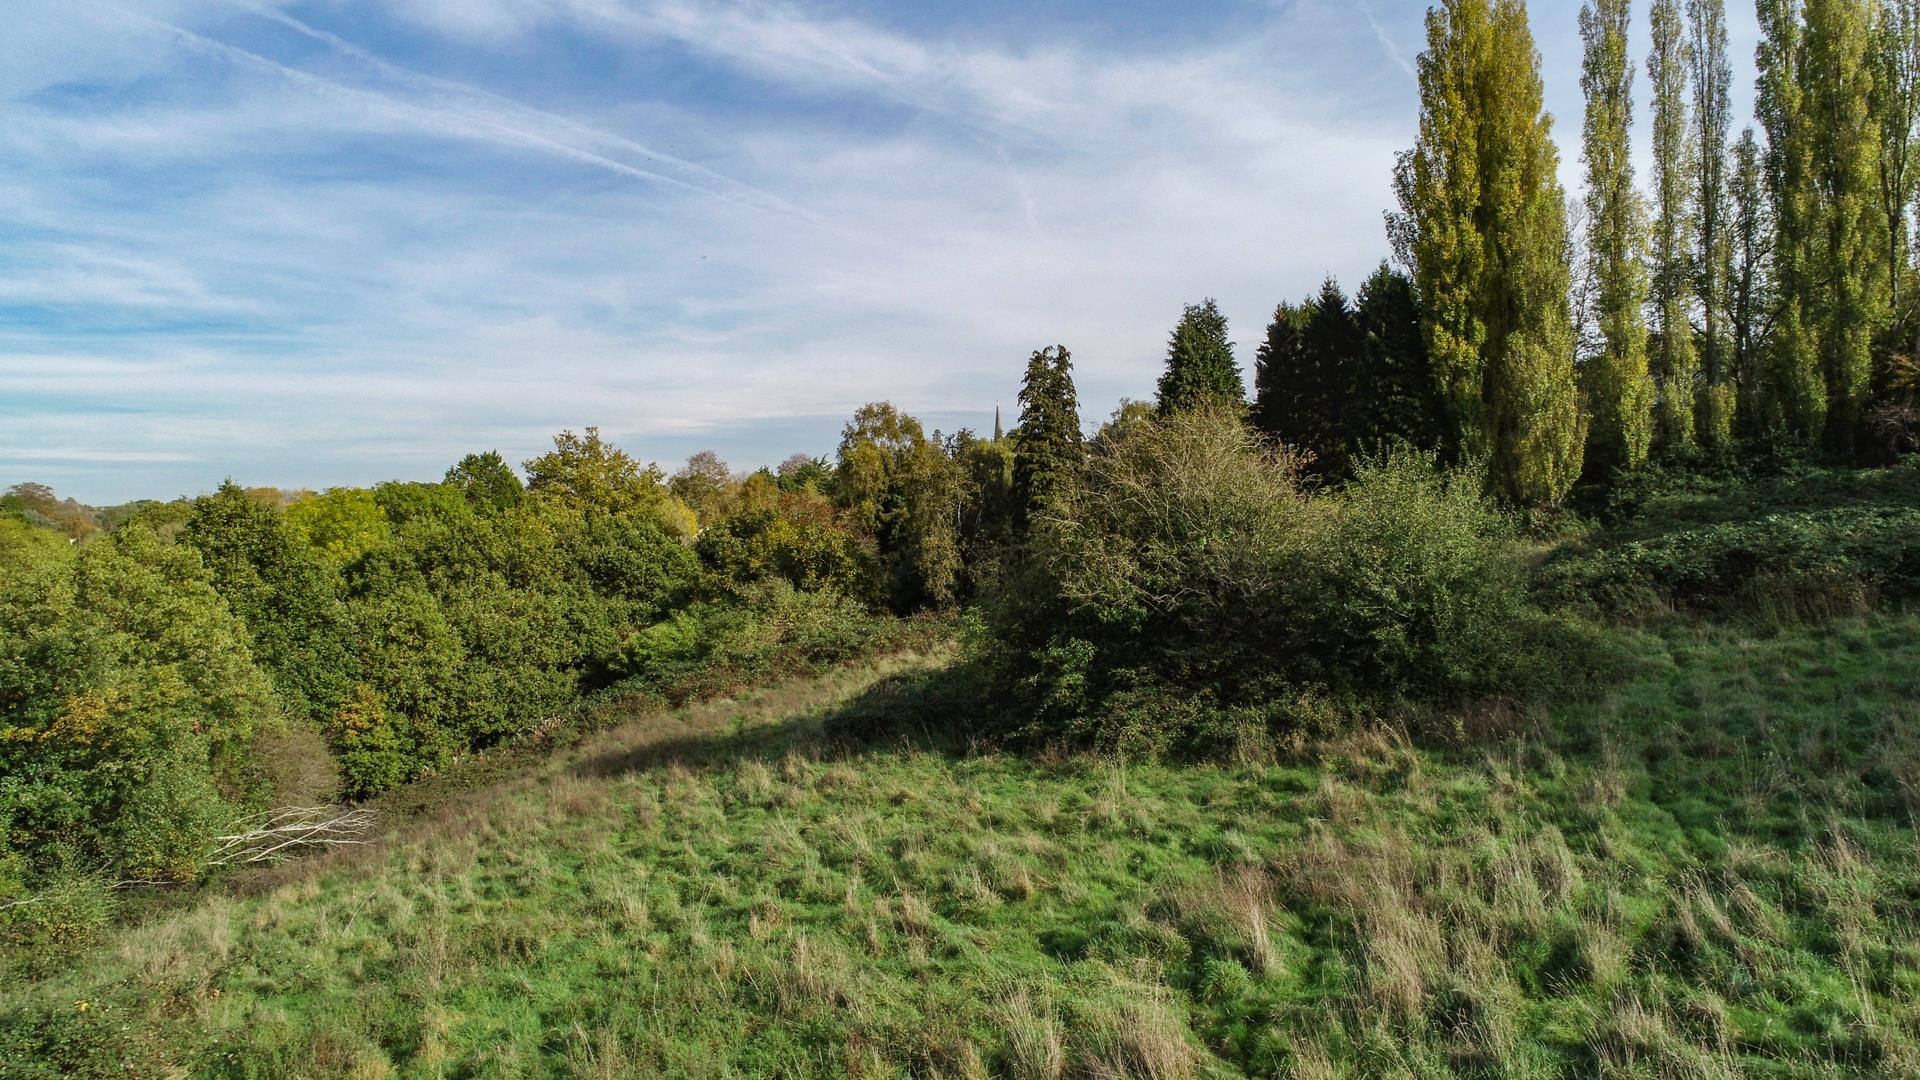 Images for 4.7 ACRES - SNEYD PARK EAID:hollismoapi BID:11